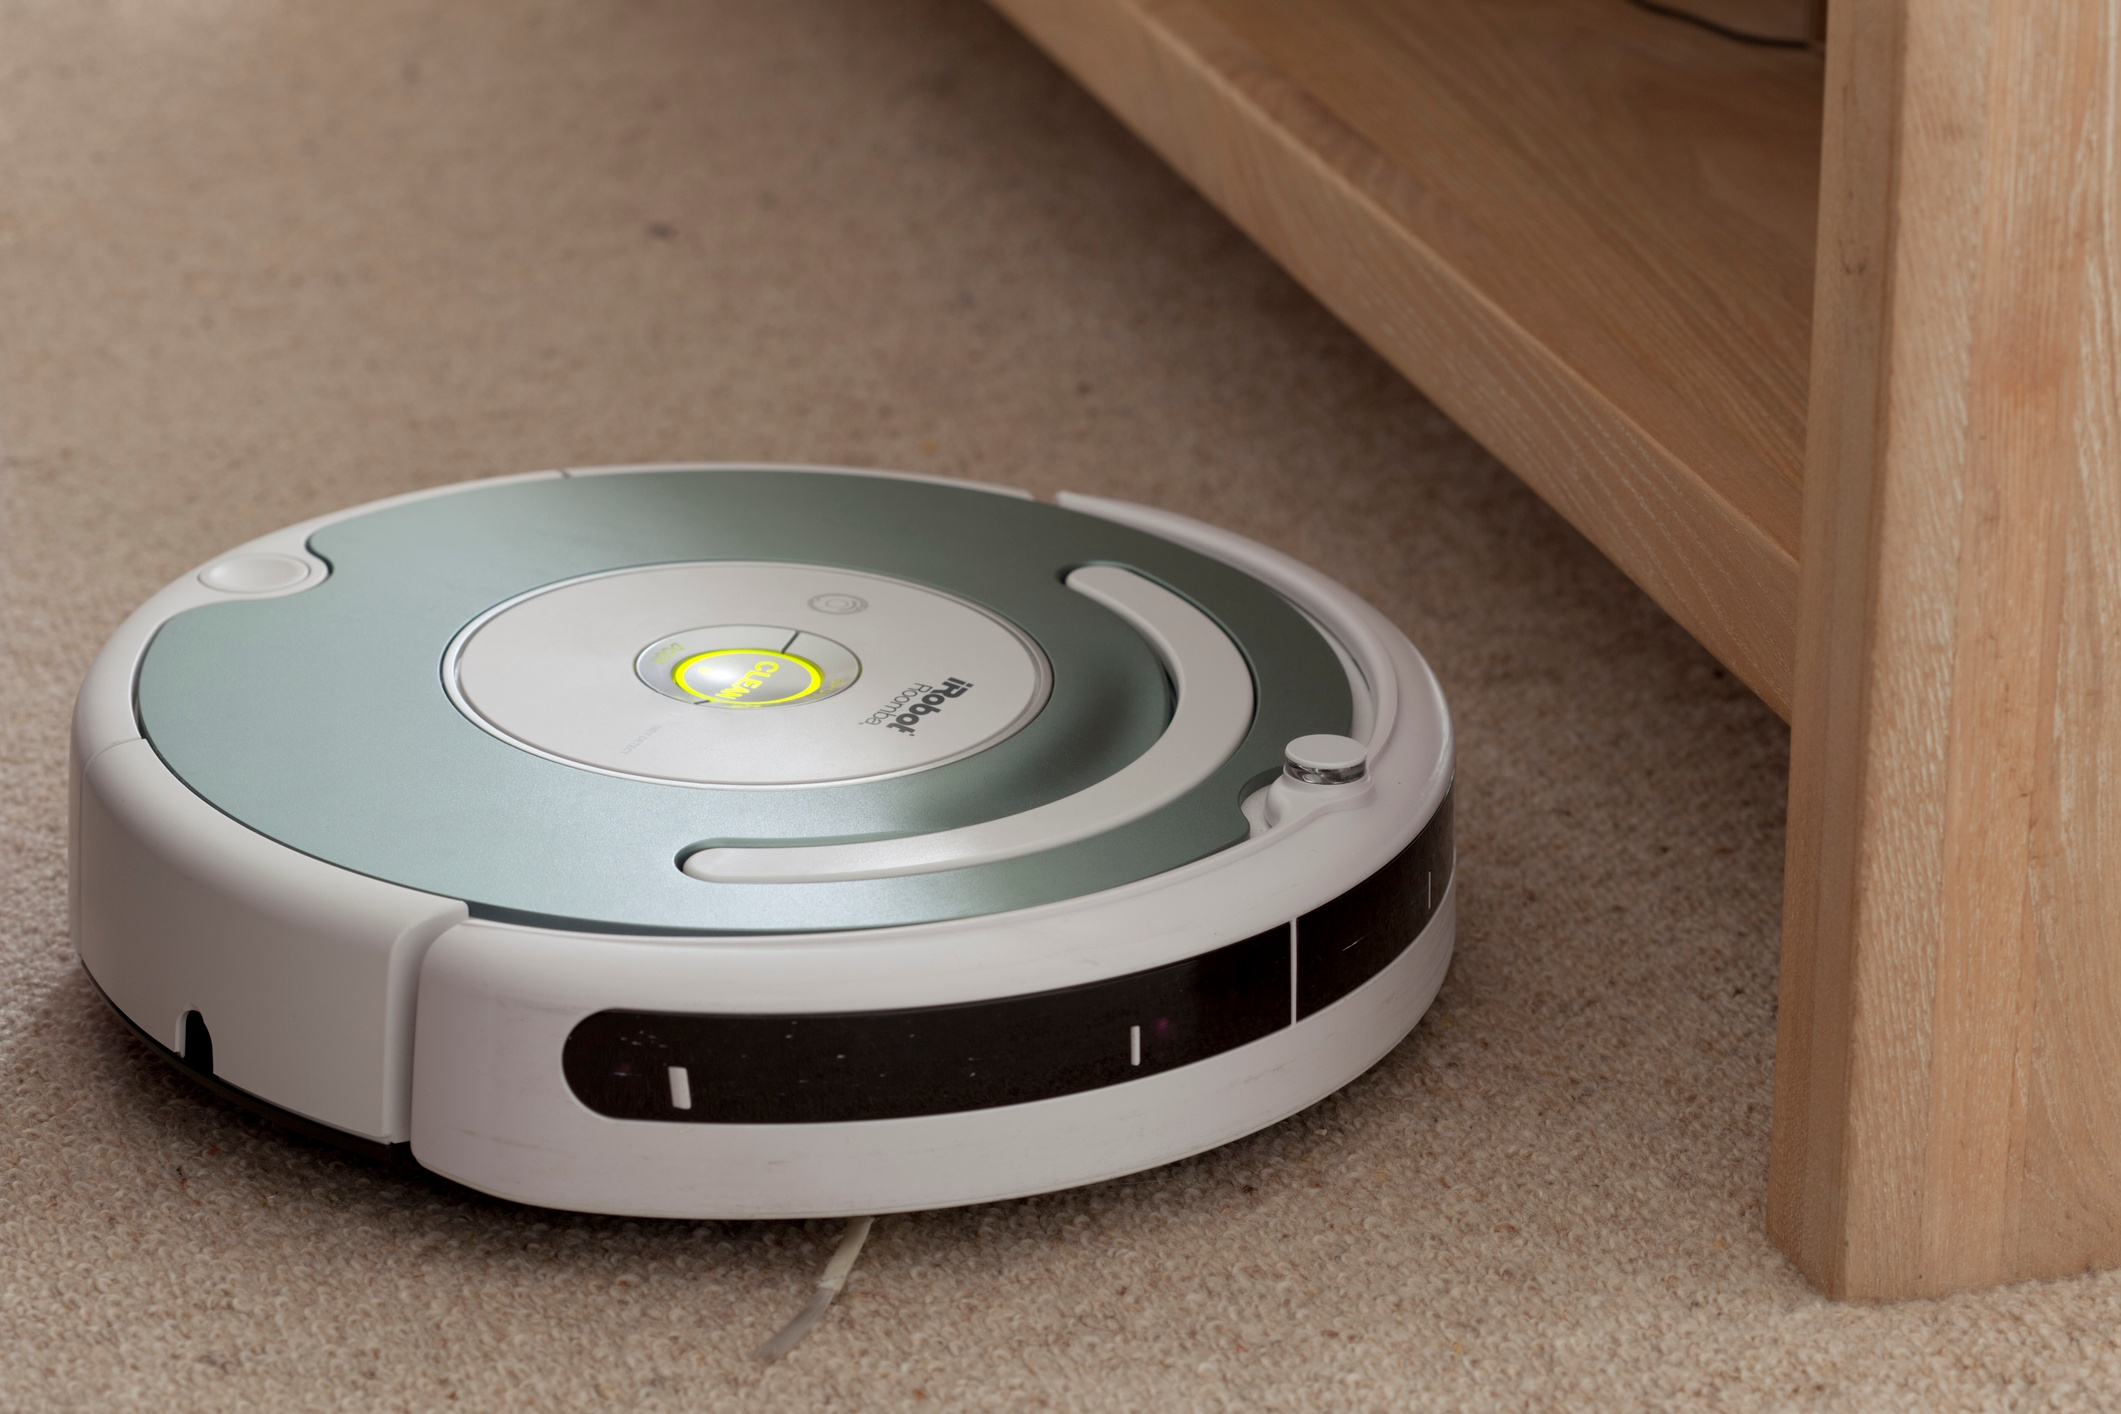 iRobot Roomba robot vacuum set to run at noon